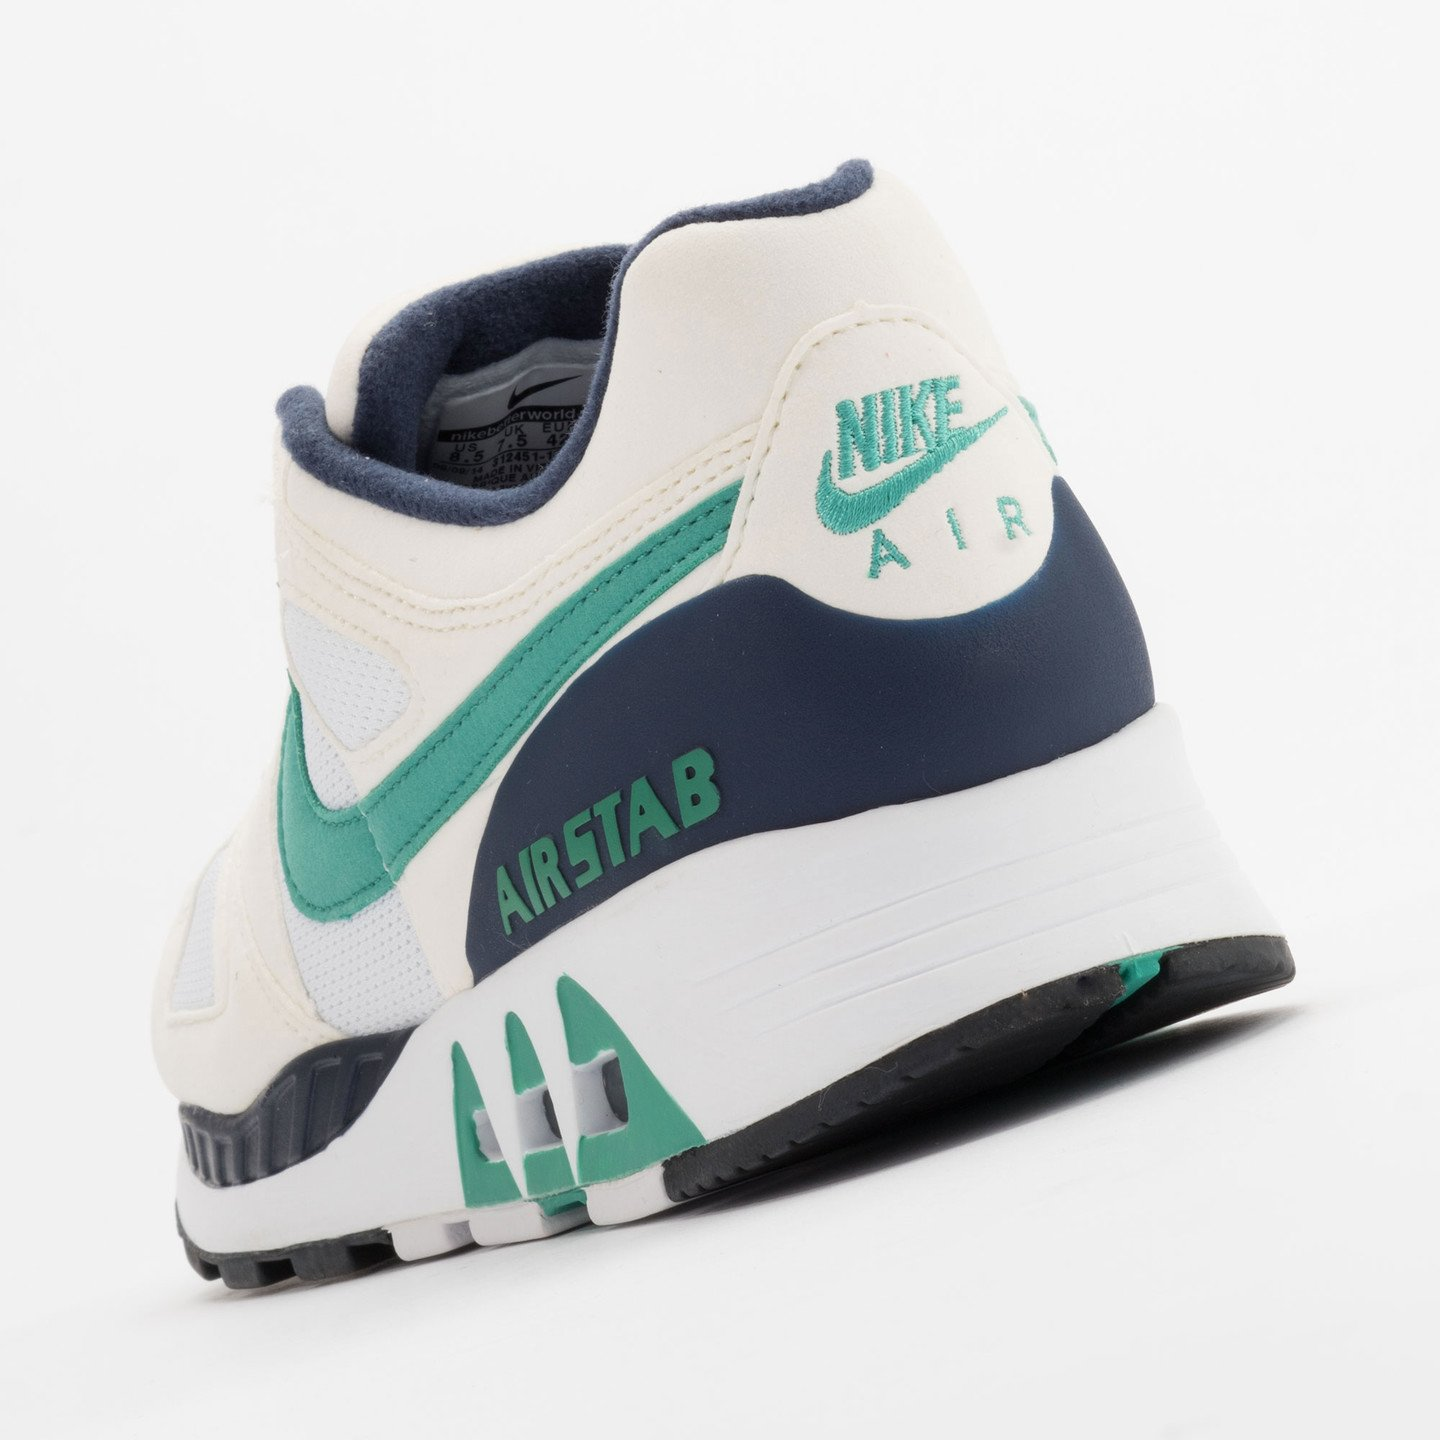 Nike Air Stab White/Emerald Green-Sl-Mid Nvy 312451-100-45.5